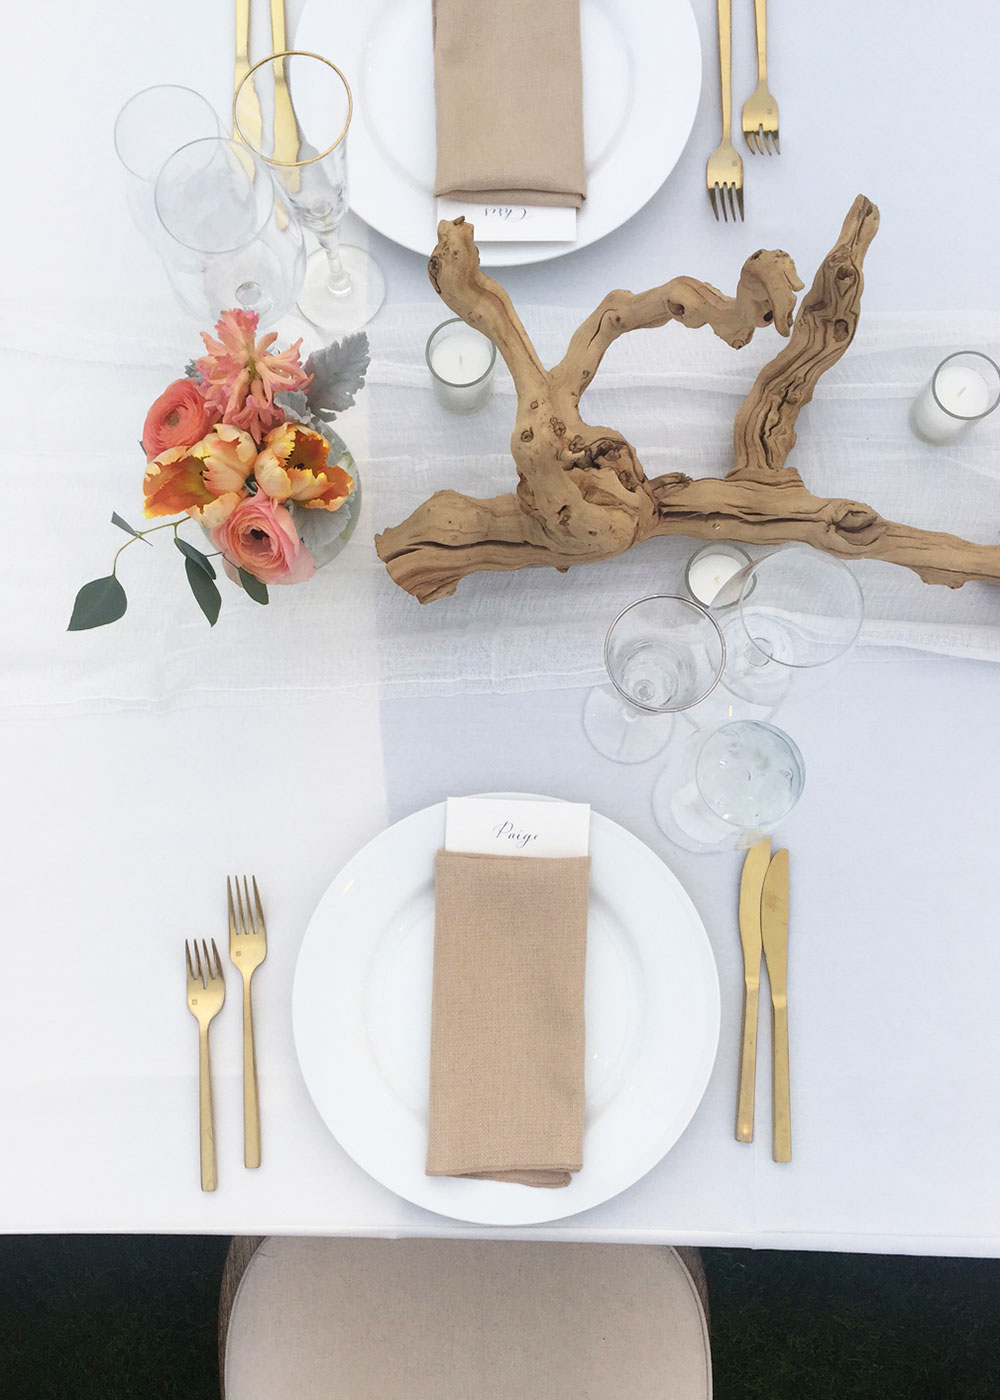 simple and elegant wedding place setting in palm springs | thelovedesignedlife.com